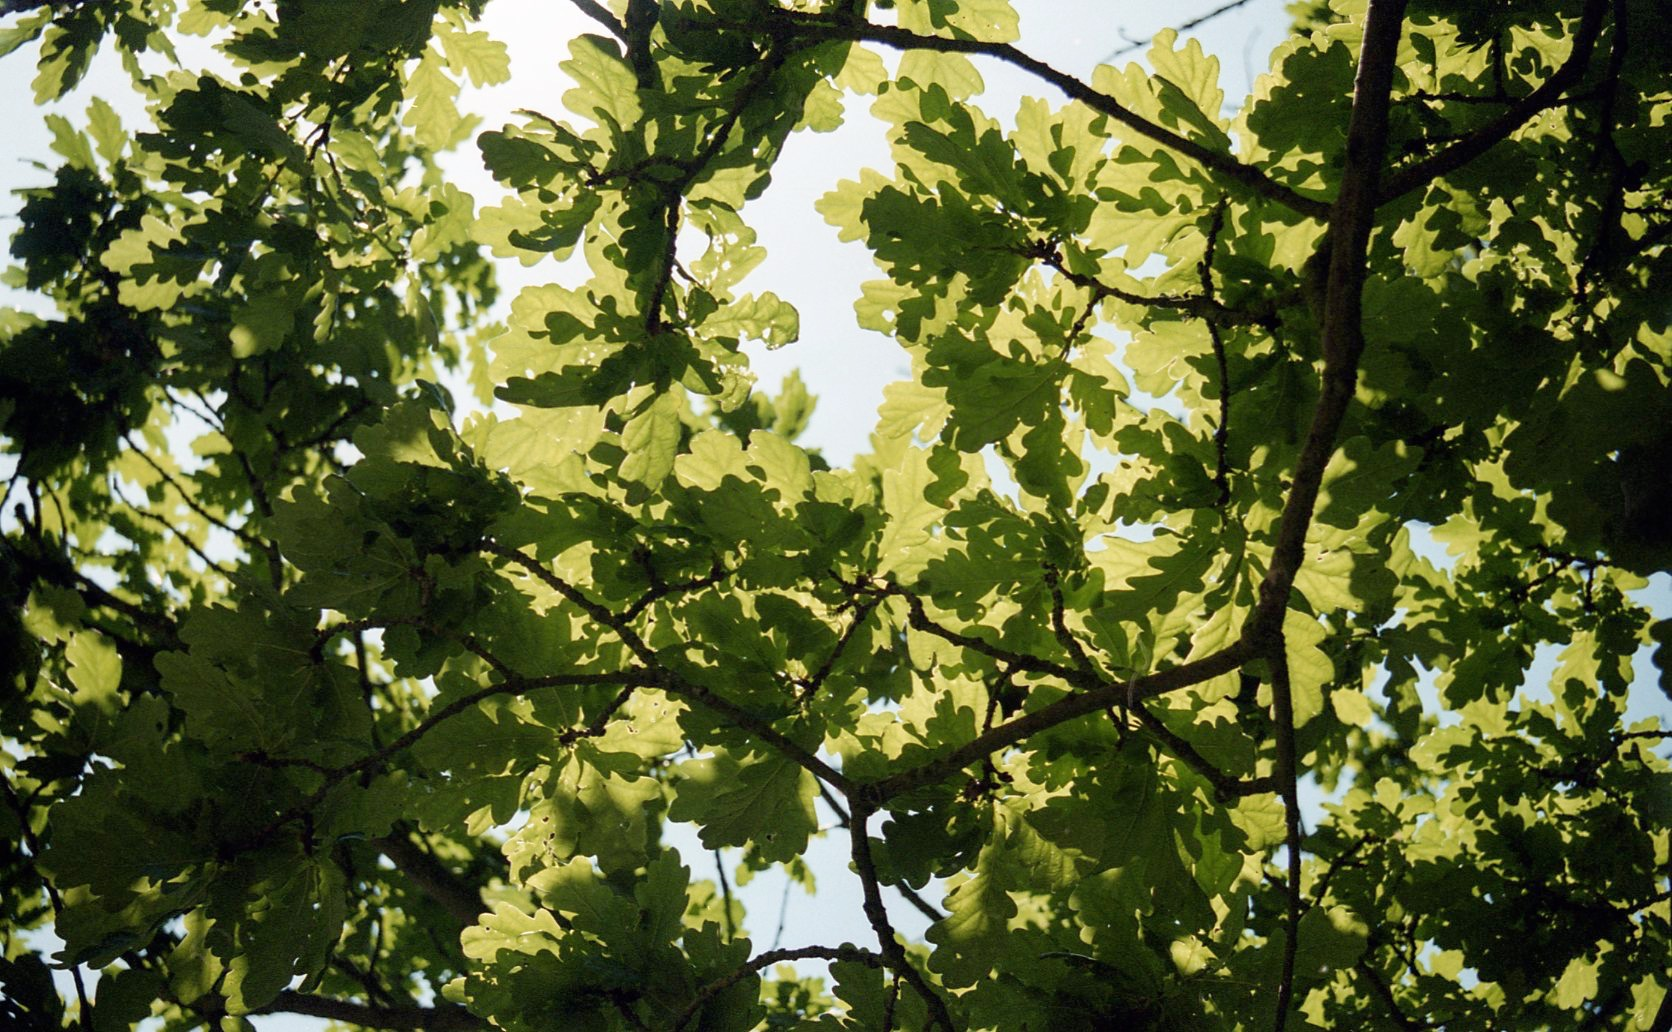 Oak leaves 7.03